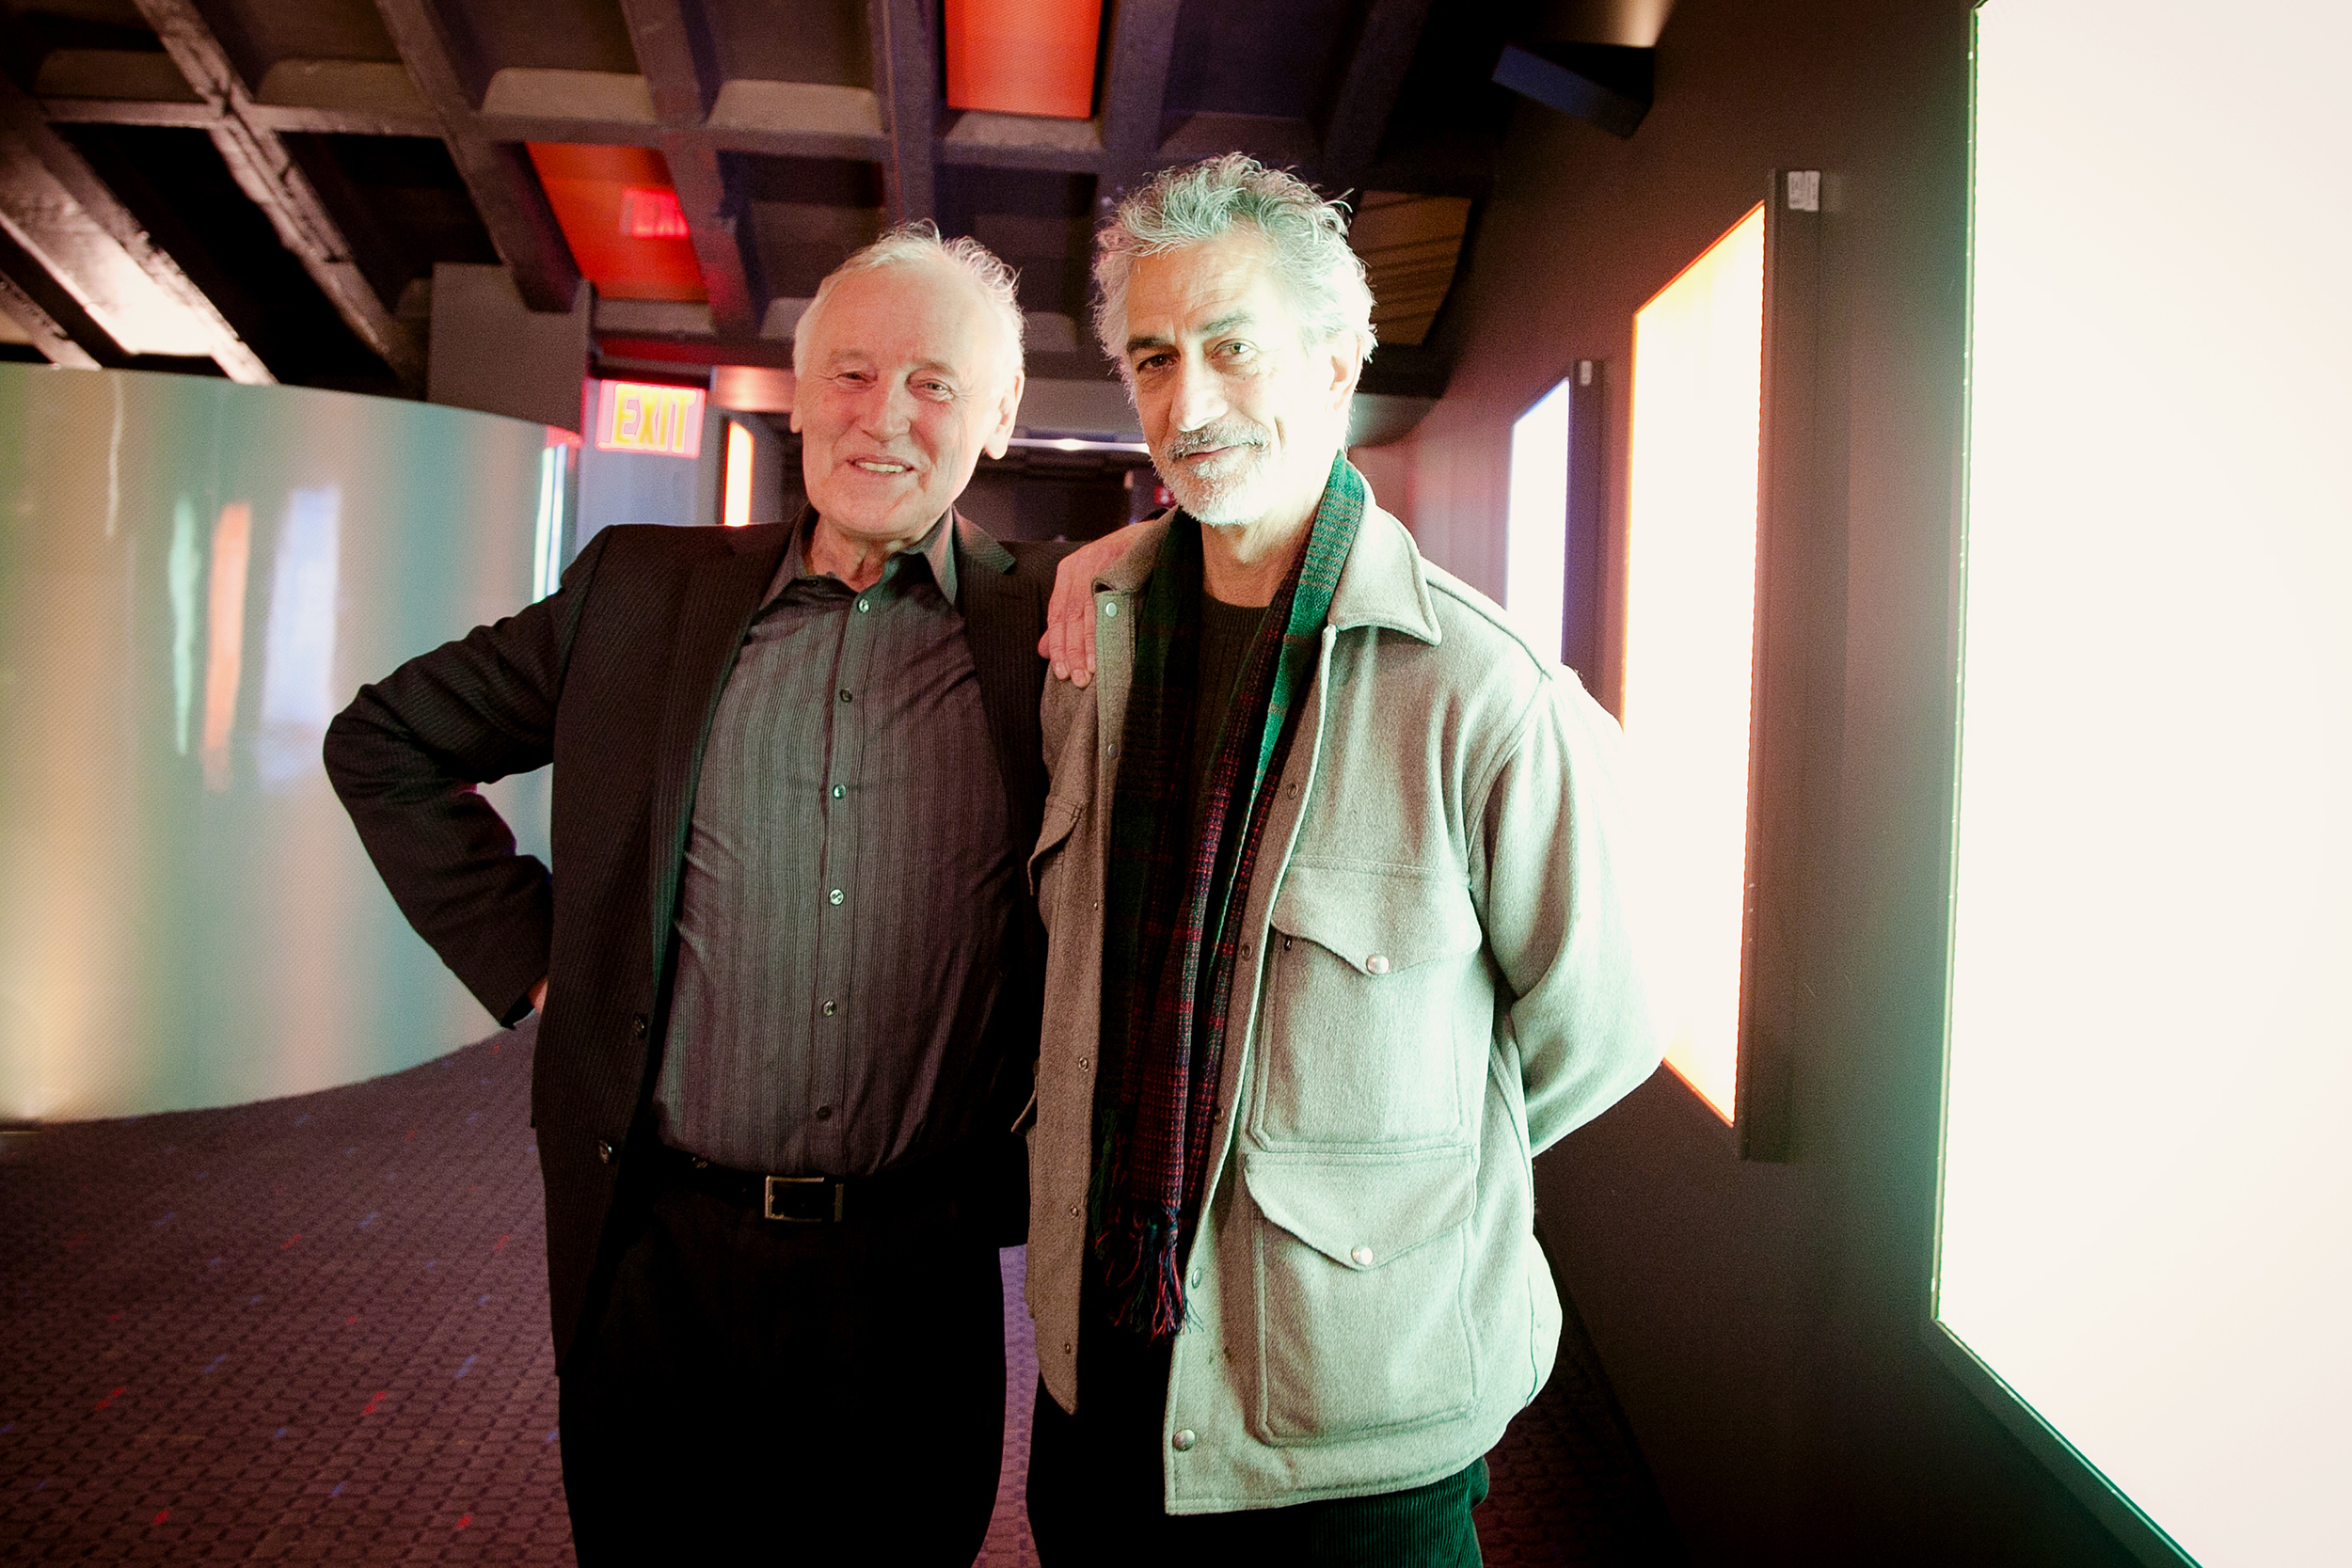 Lehmann Reeves & David Strathairn